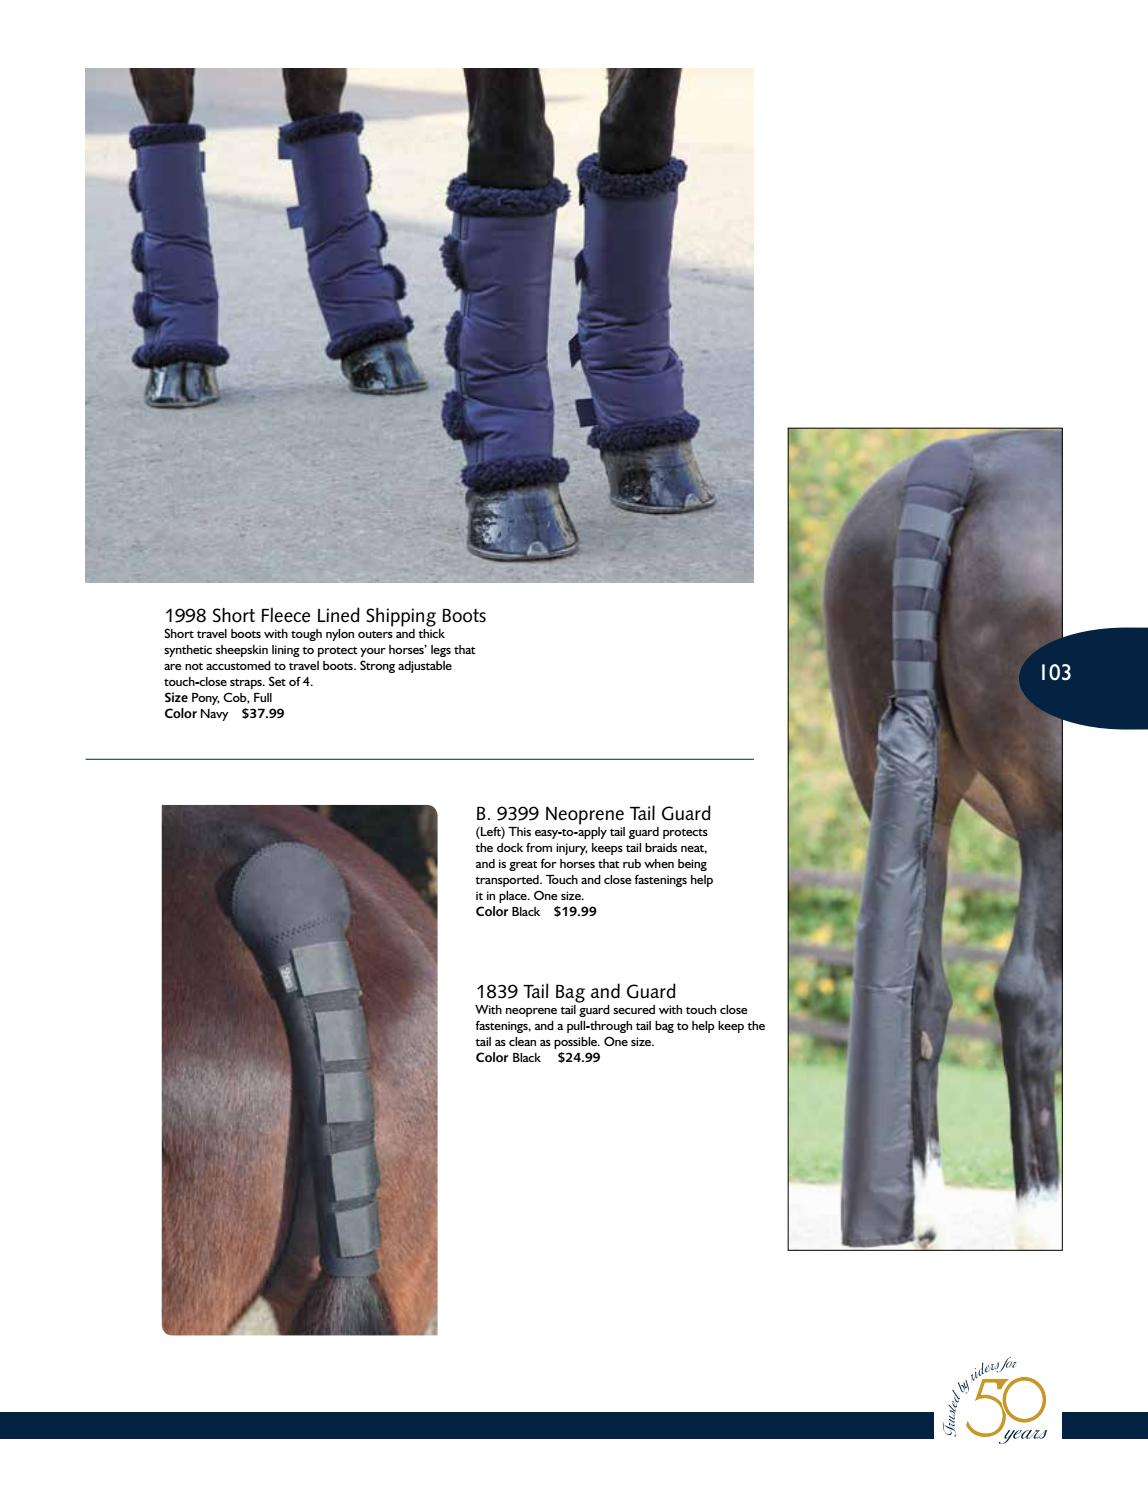 protects the dock from injury Braids secured Tail Bag for Horse